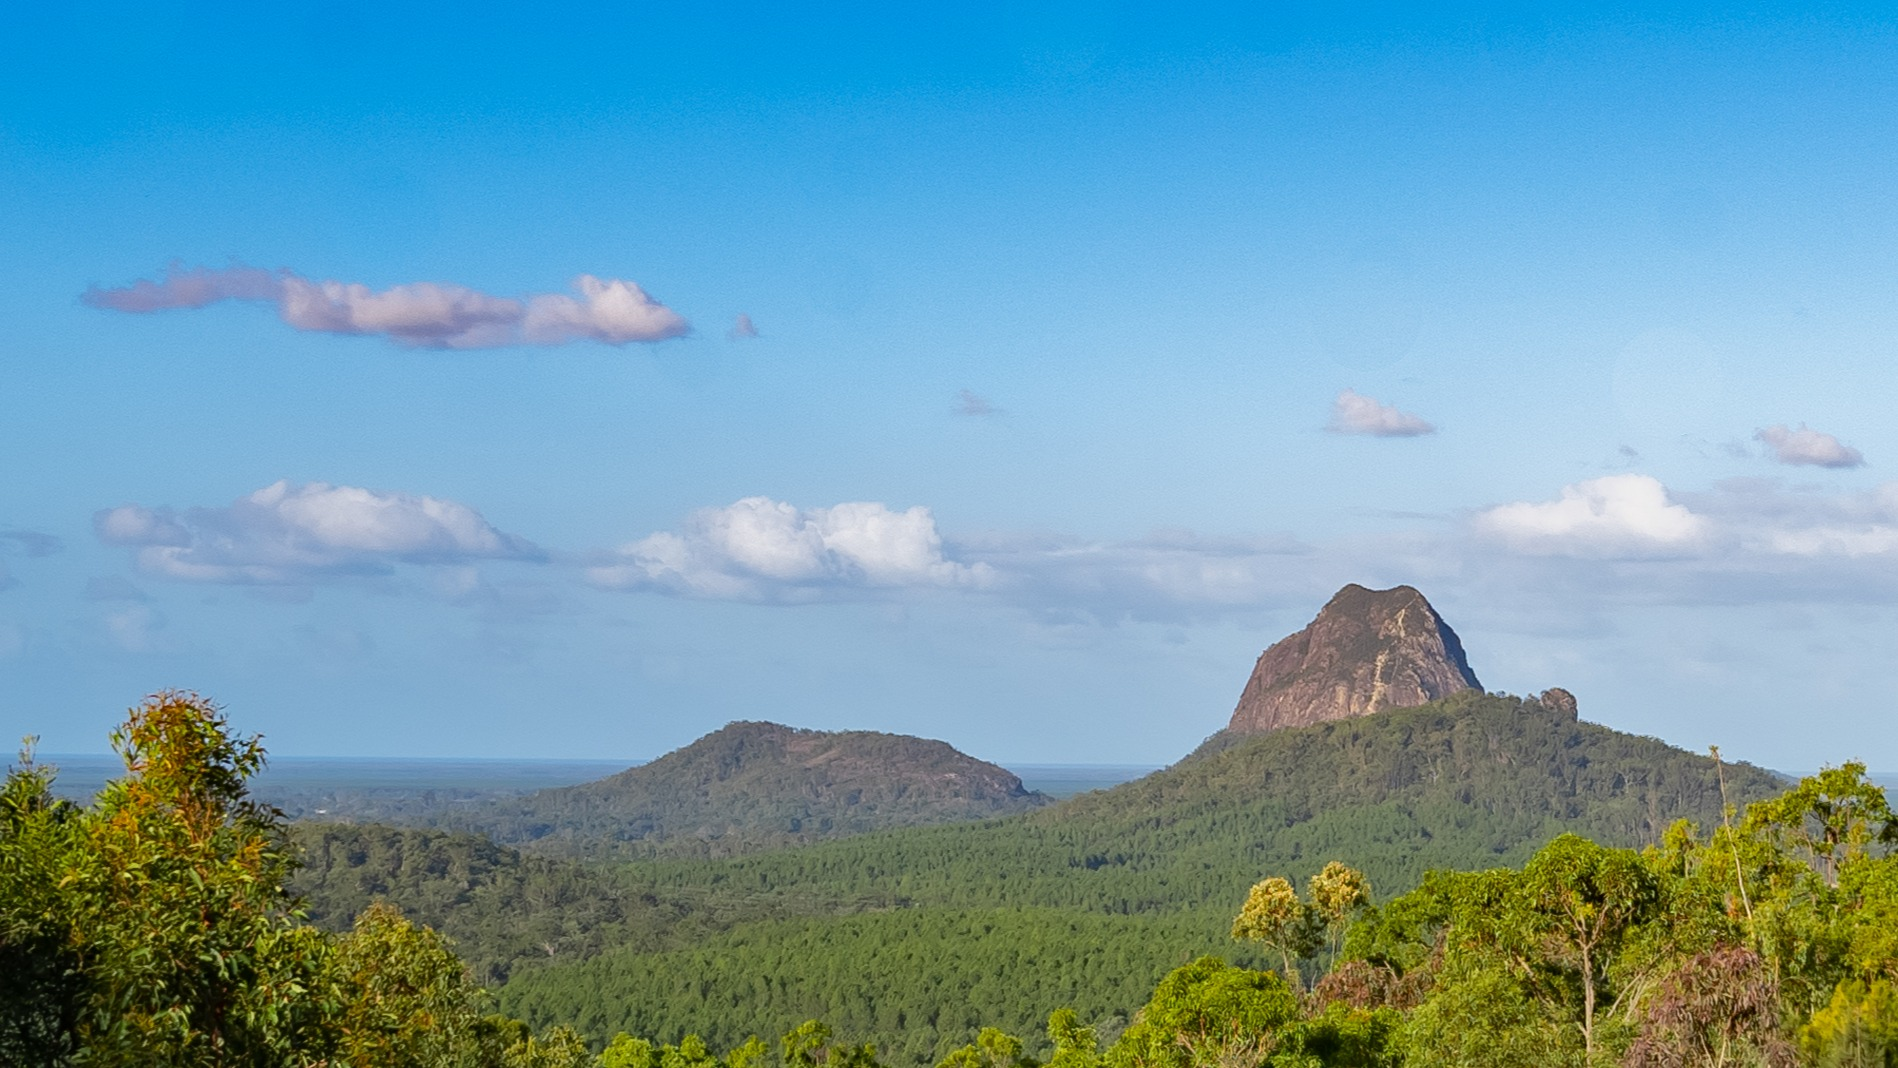 View of the Glasshouse Mountains